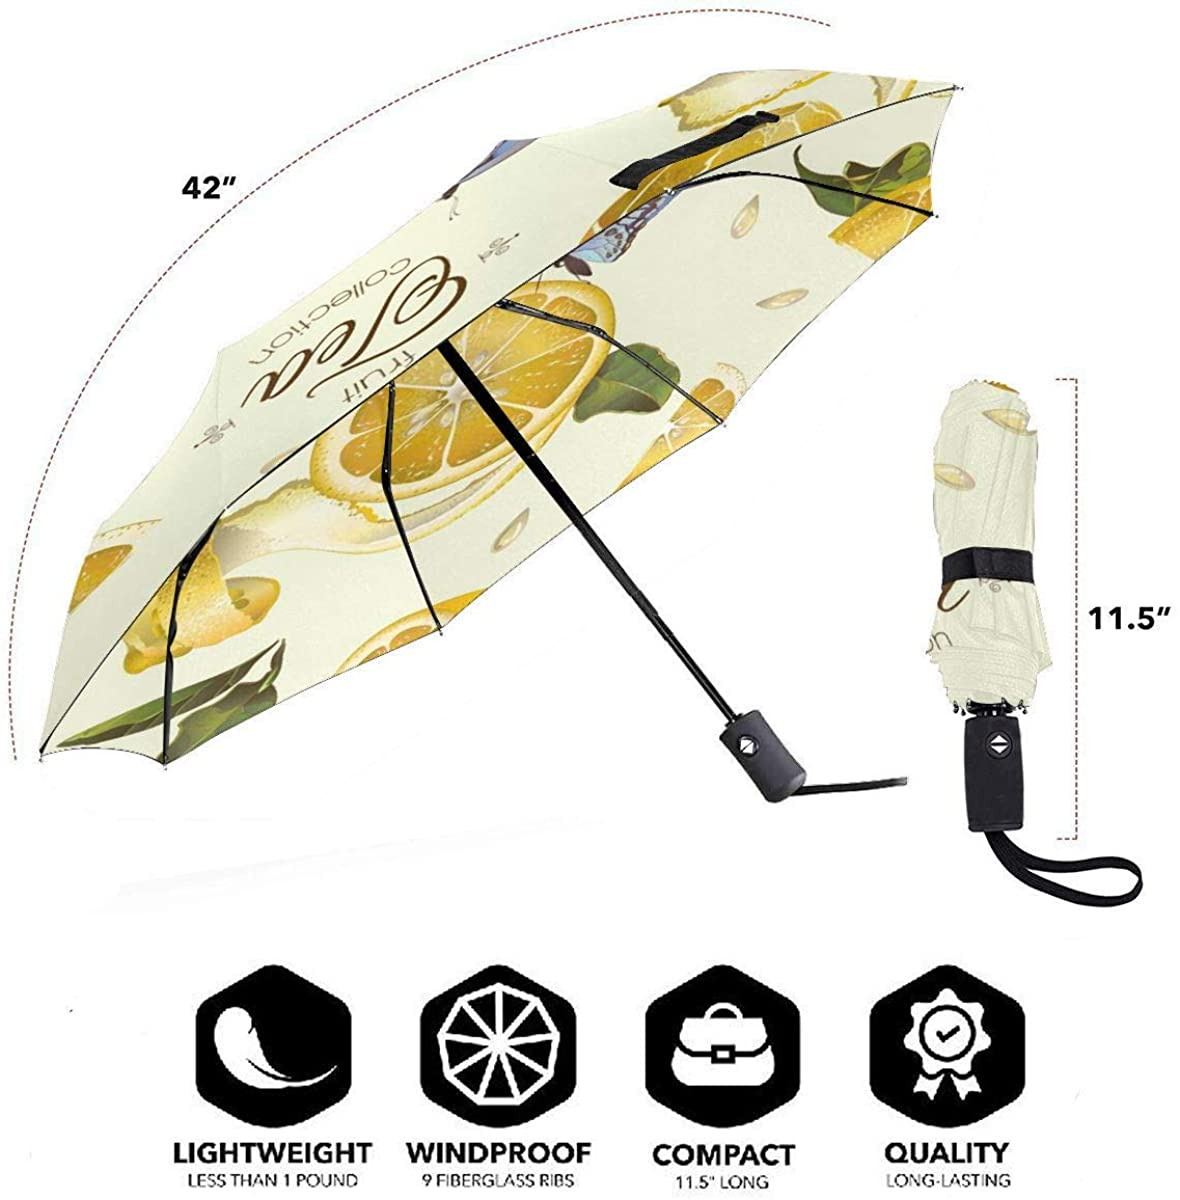 Lemon Tea Seamless Pattern Vector Image Compact Travel Umbrella Windproof Reinforced Canopy 8 Ribs Umbrella Auto Open And Close Button Customized